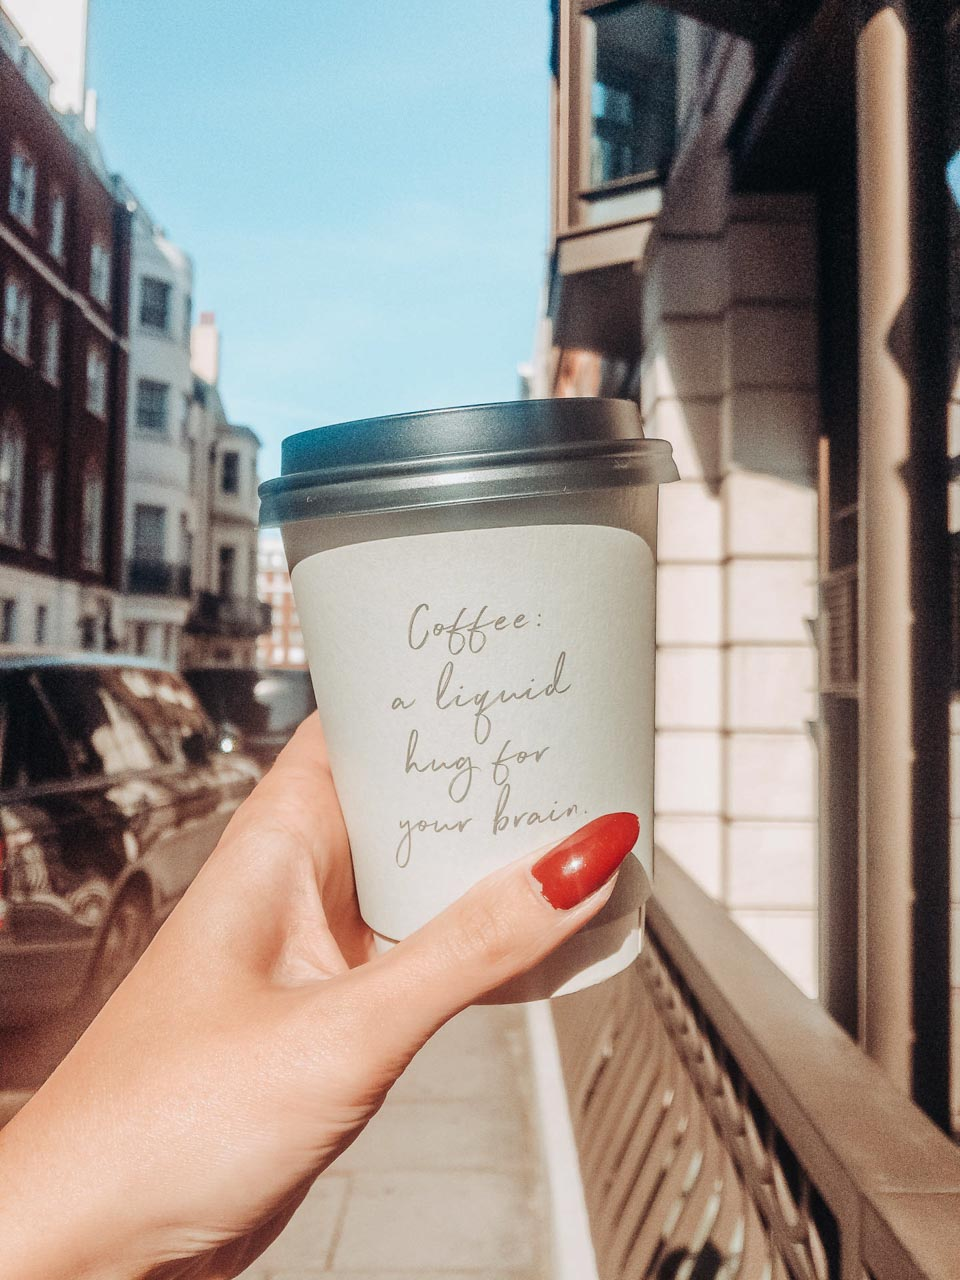 A girl holding a cup of coffee standing in a street in Mayfair, London